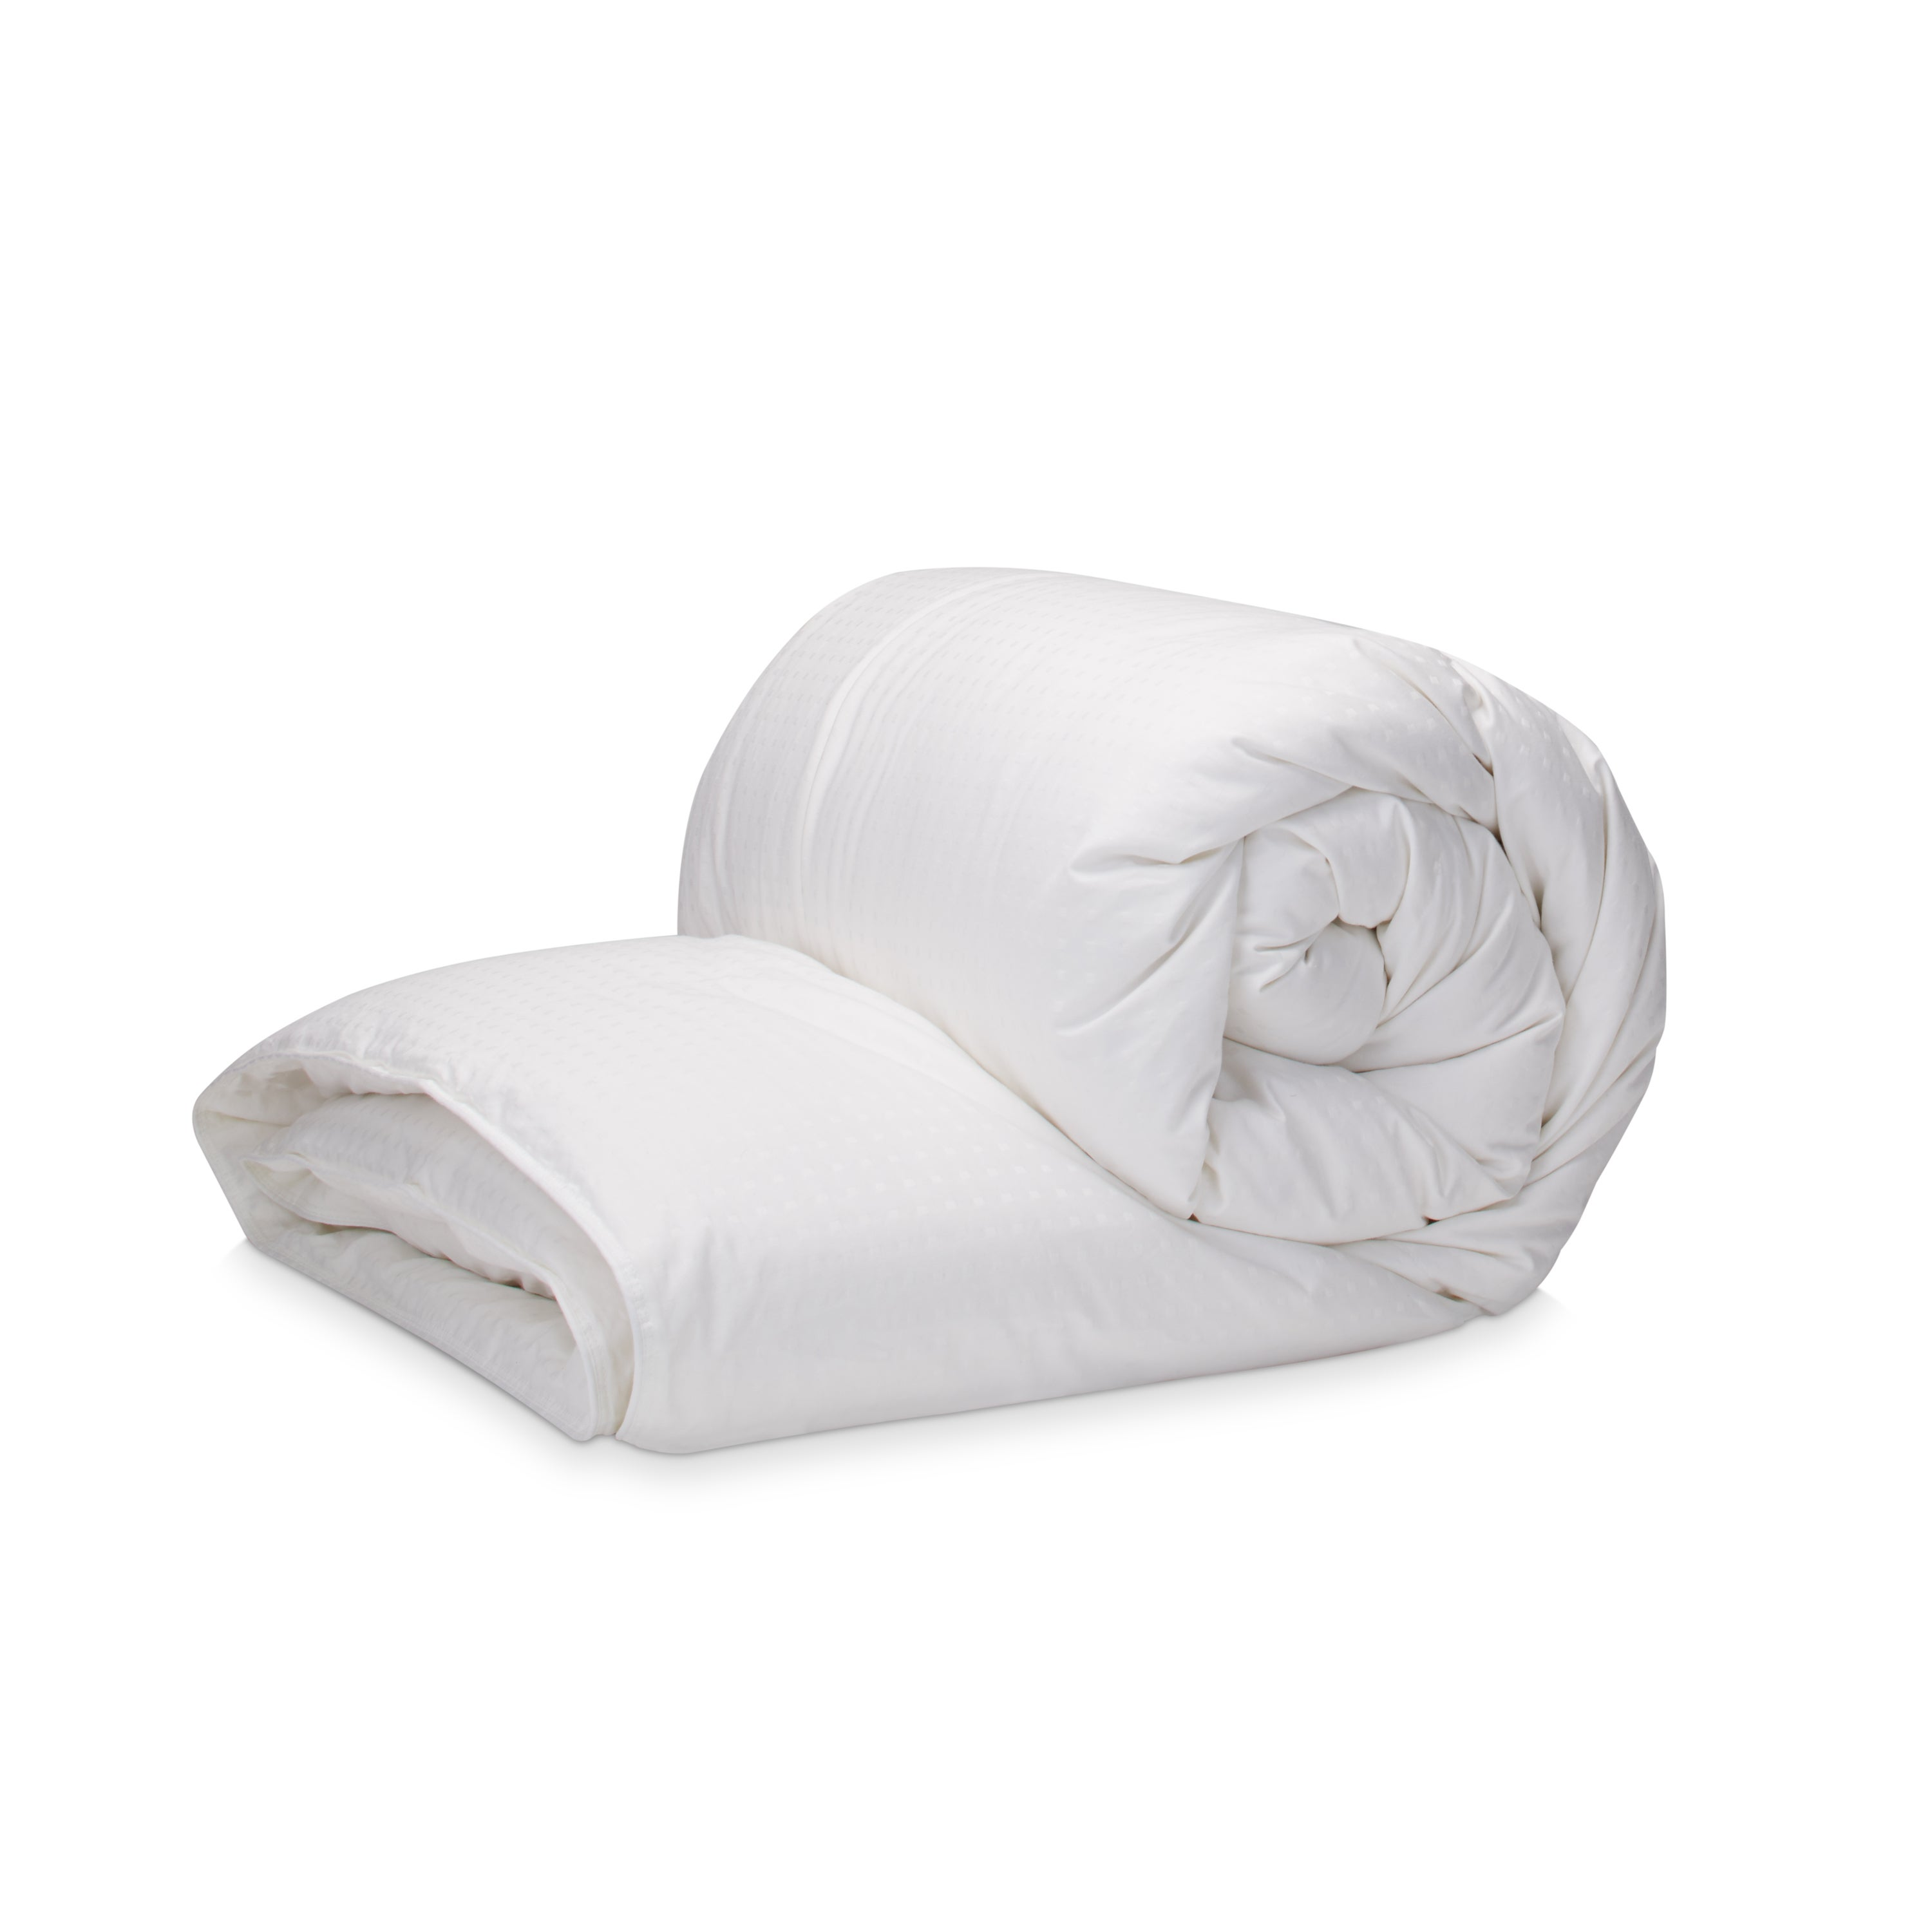 elle white down hungarian product today thread comforter count bath shipping bedding free goose